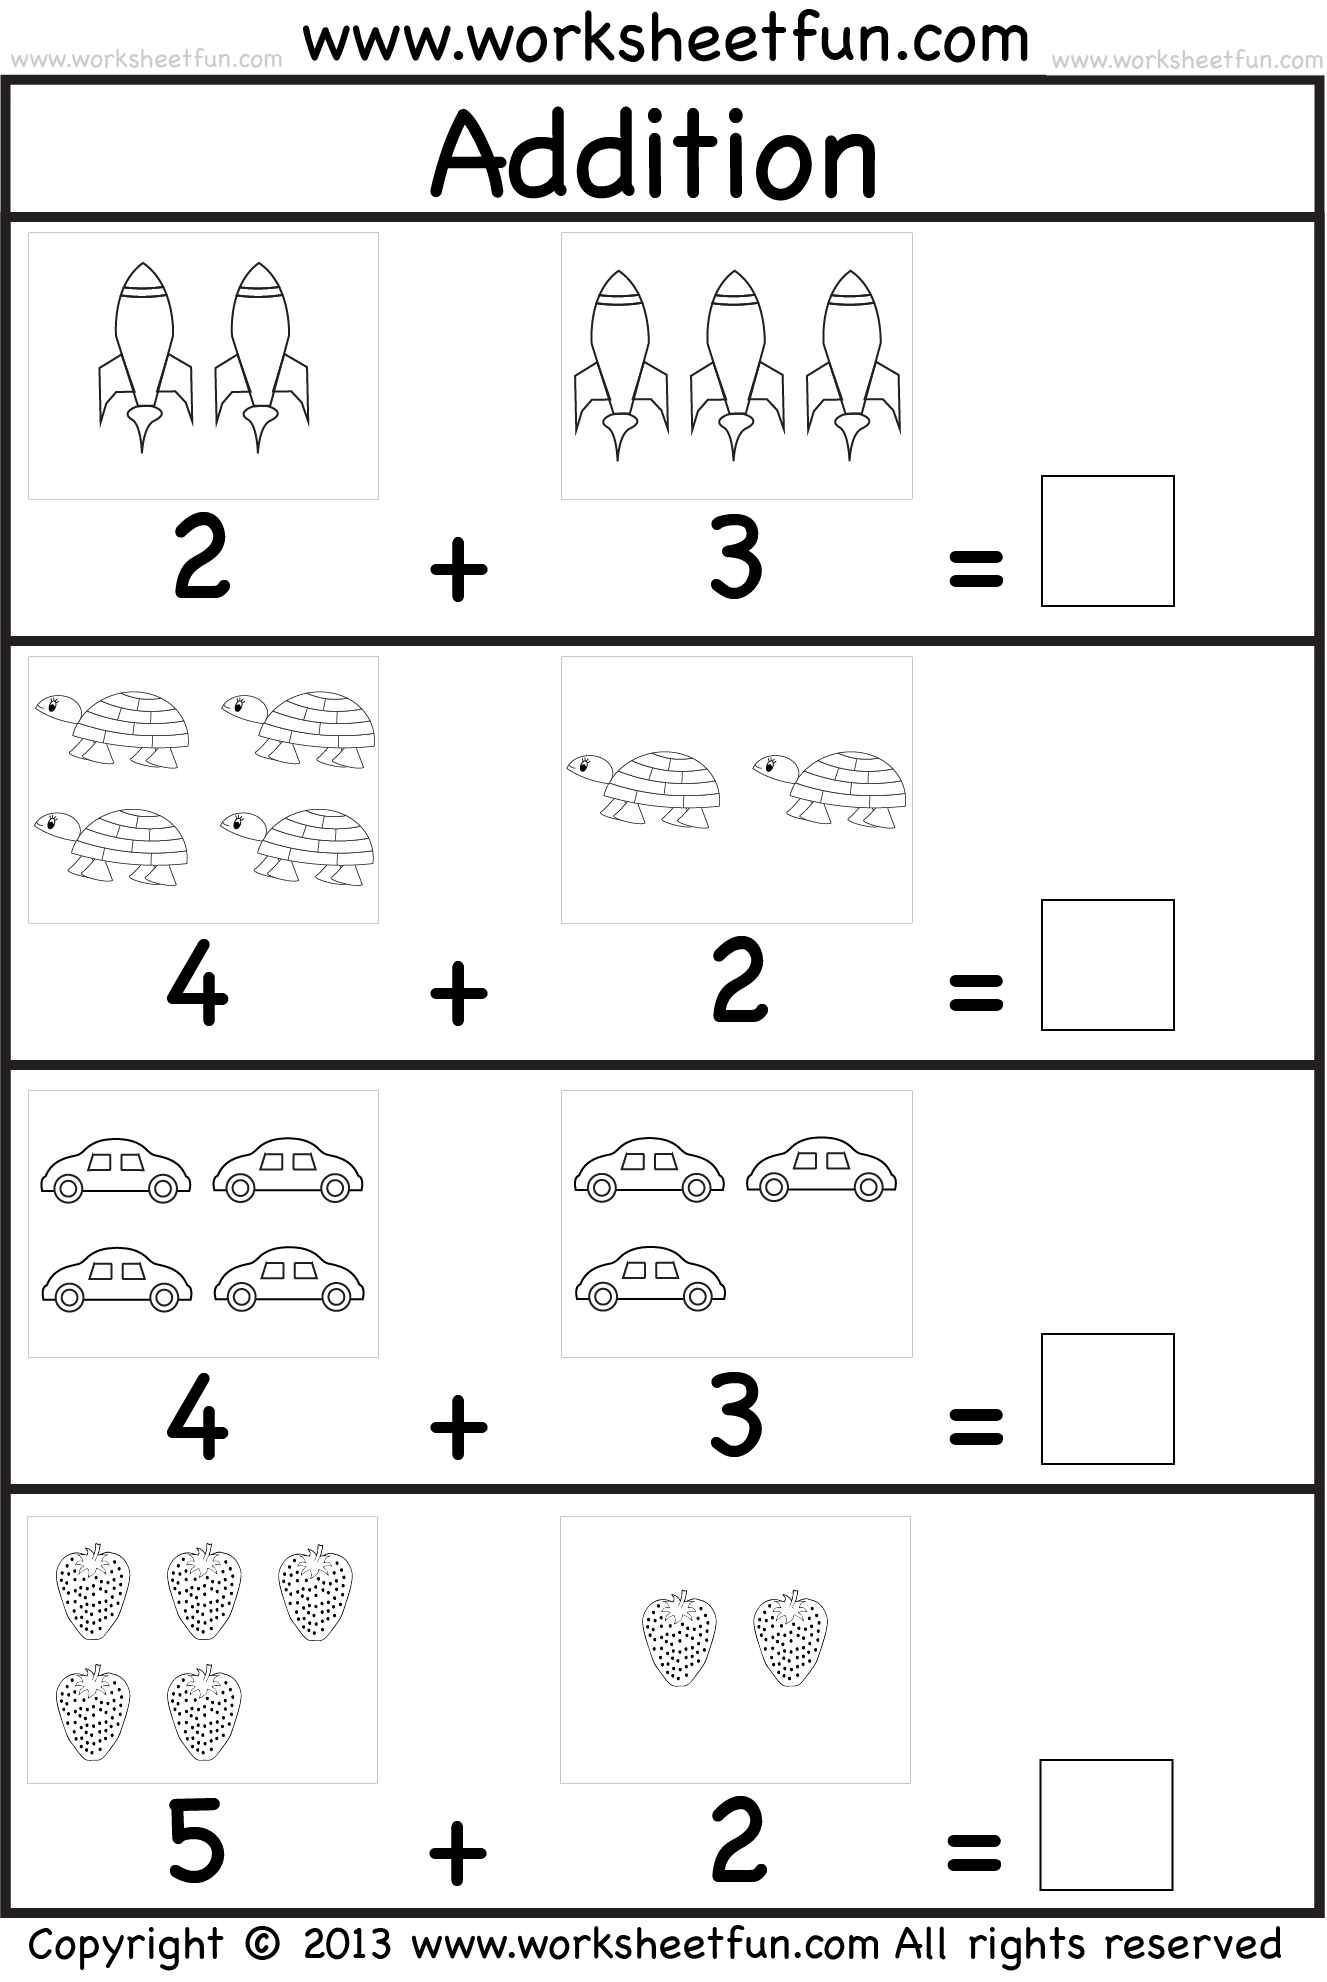 addition worksheet this site has great free worksheets for everything from abcs to